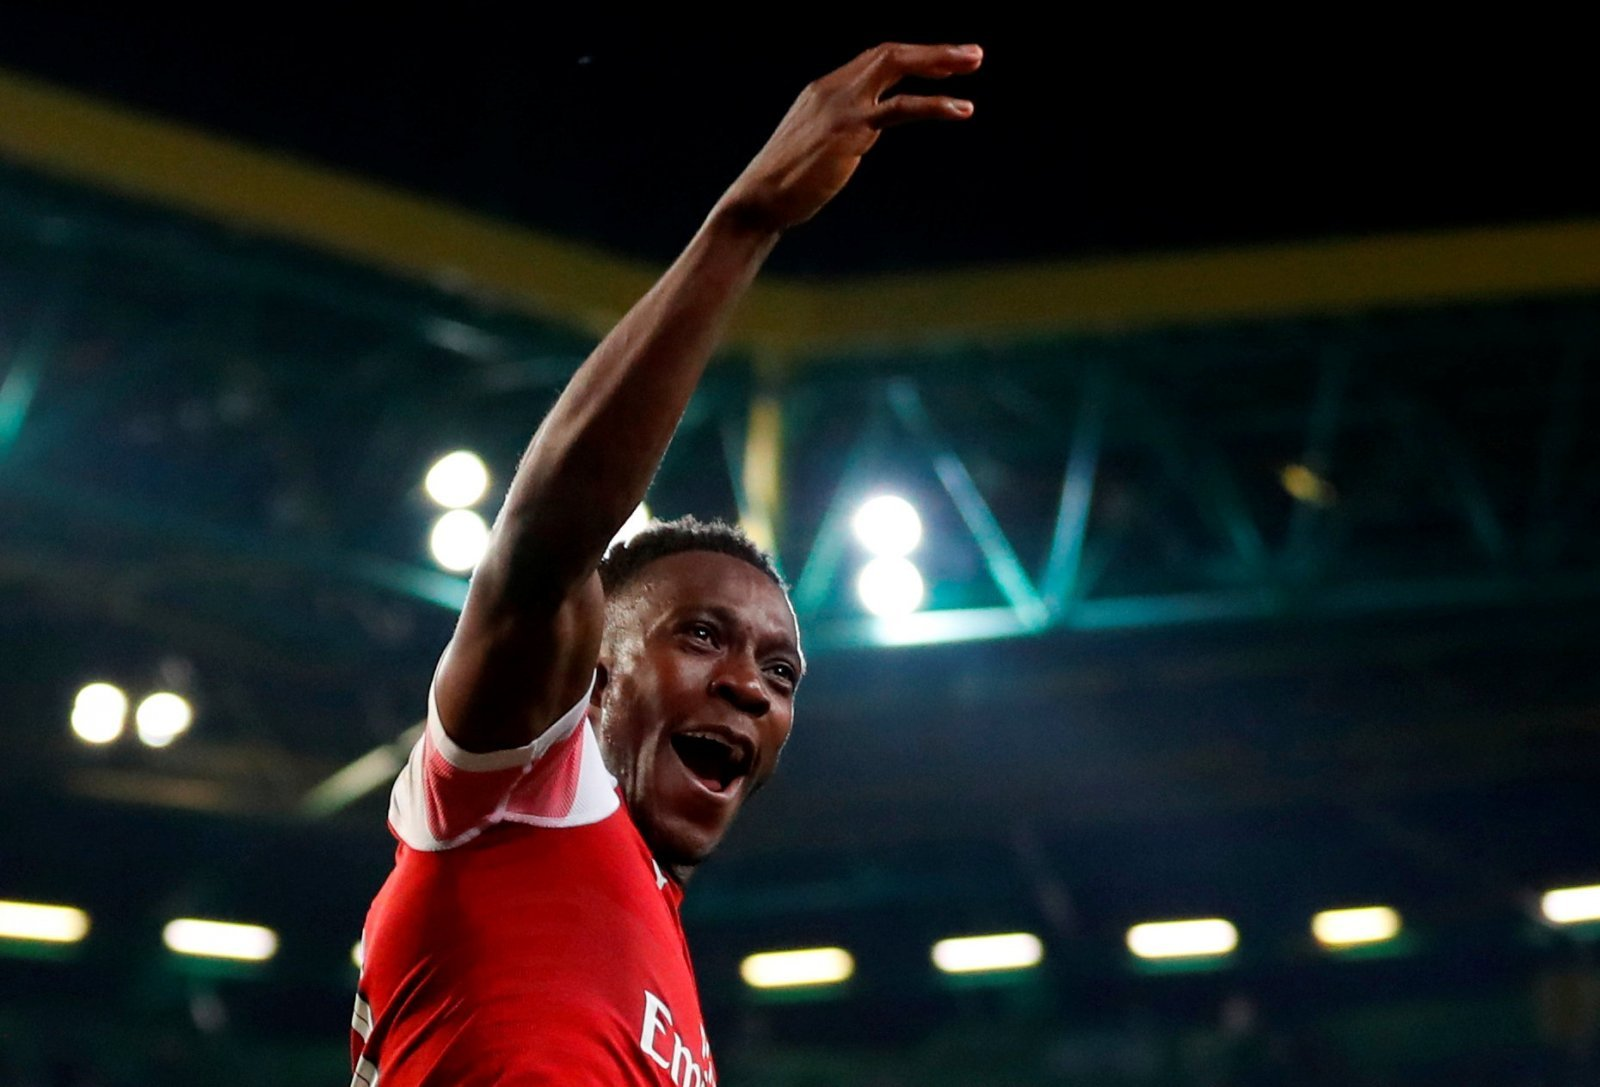 Southampton should take a big risk and sign Danny Welbeck this summer